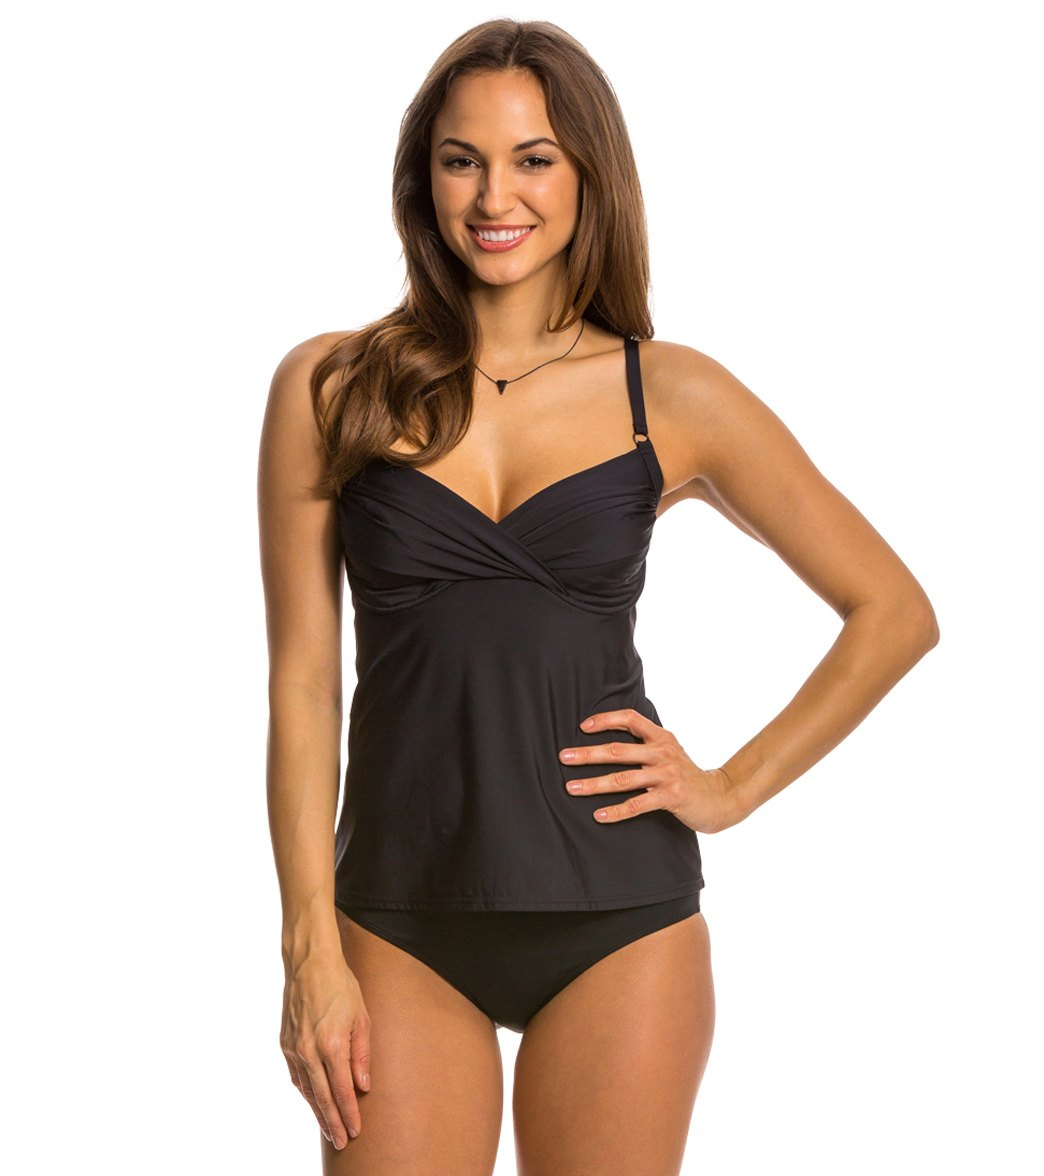 08445d950d2ab Swim Systems Solid Crossroads Tankini Top (D/DD Cup) at SwimOutlet ...